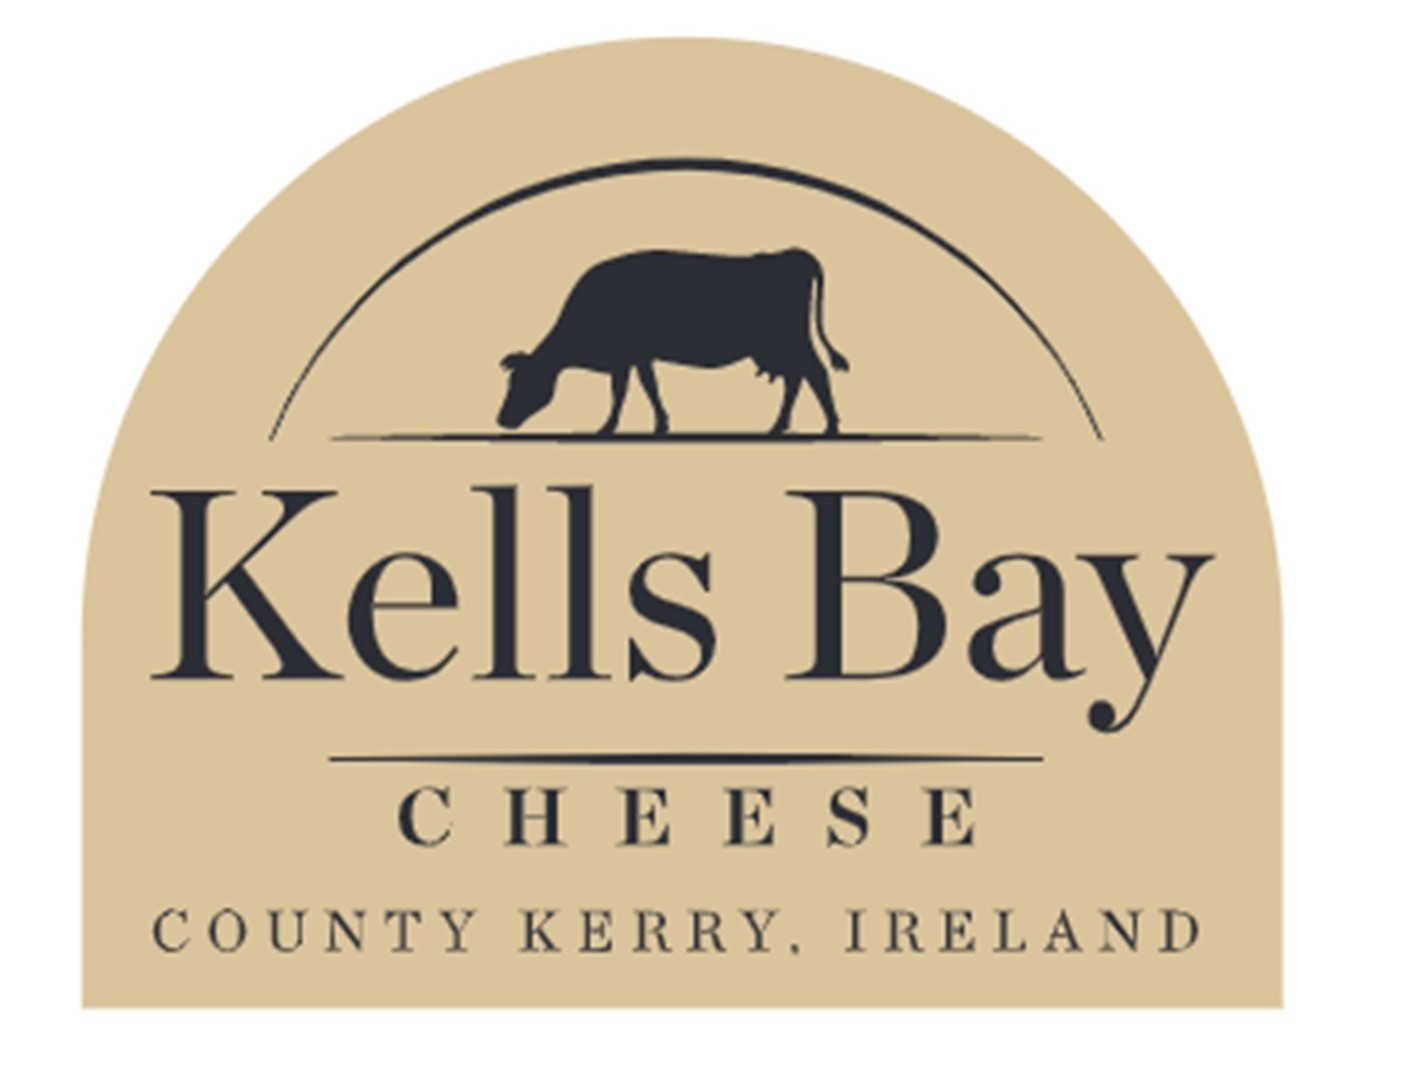 Kerry Cow Farm Ltd (Kells Bay Cheese)